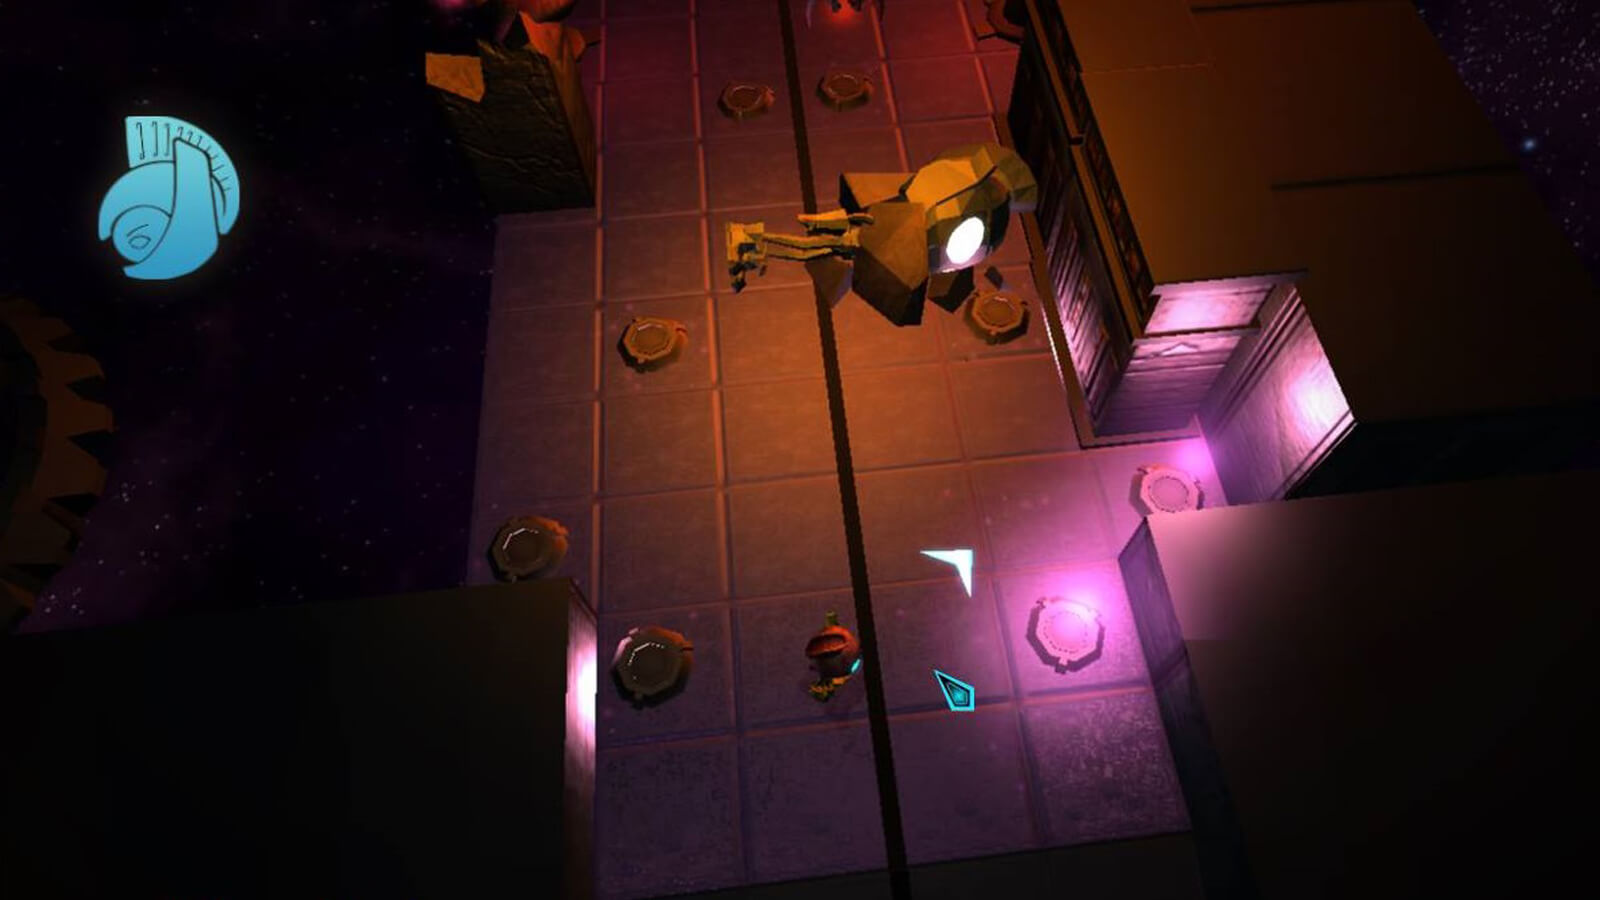 The player's character stands near glowing pink pedestals as a toppled statue lies nearby